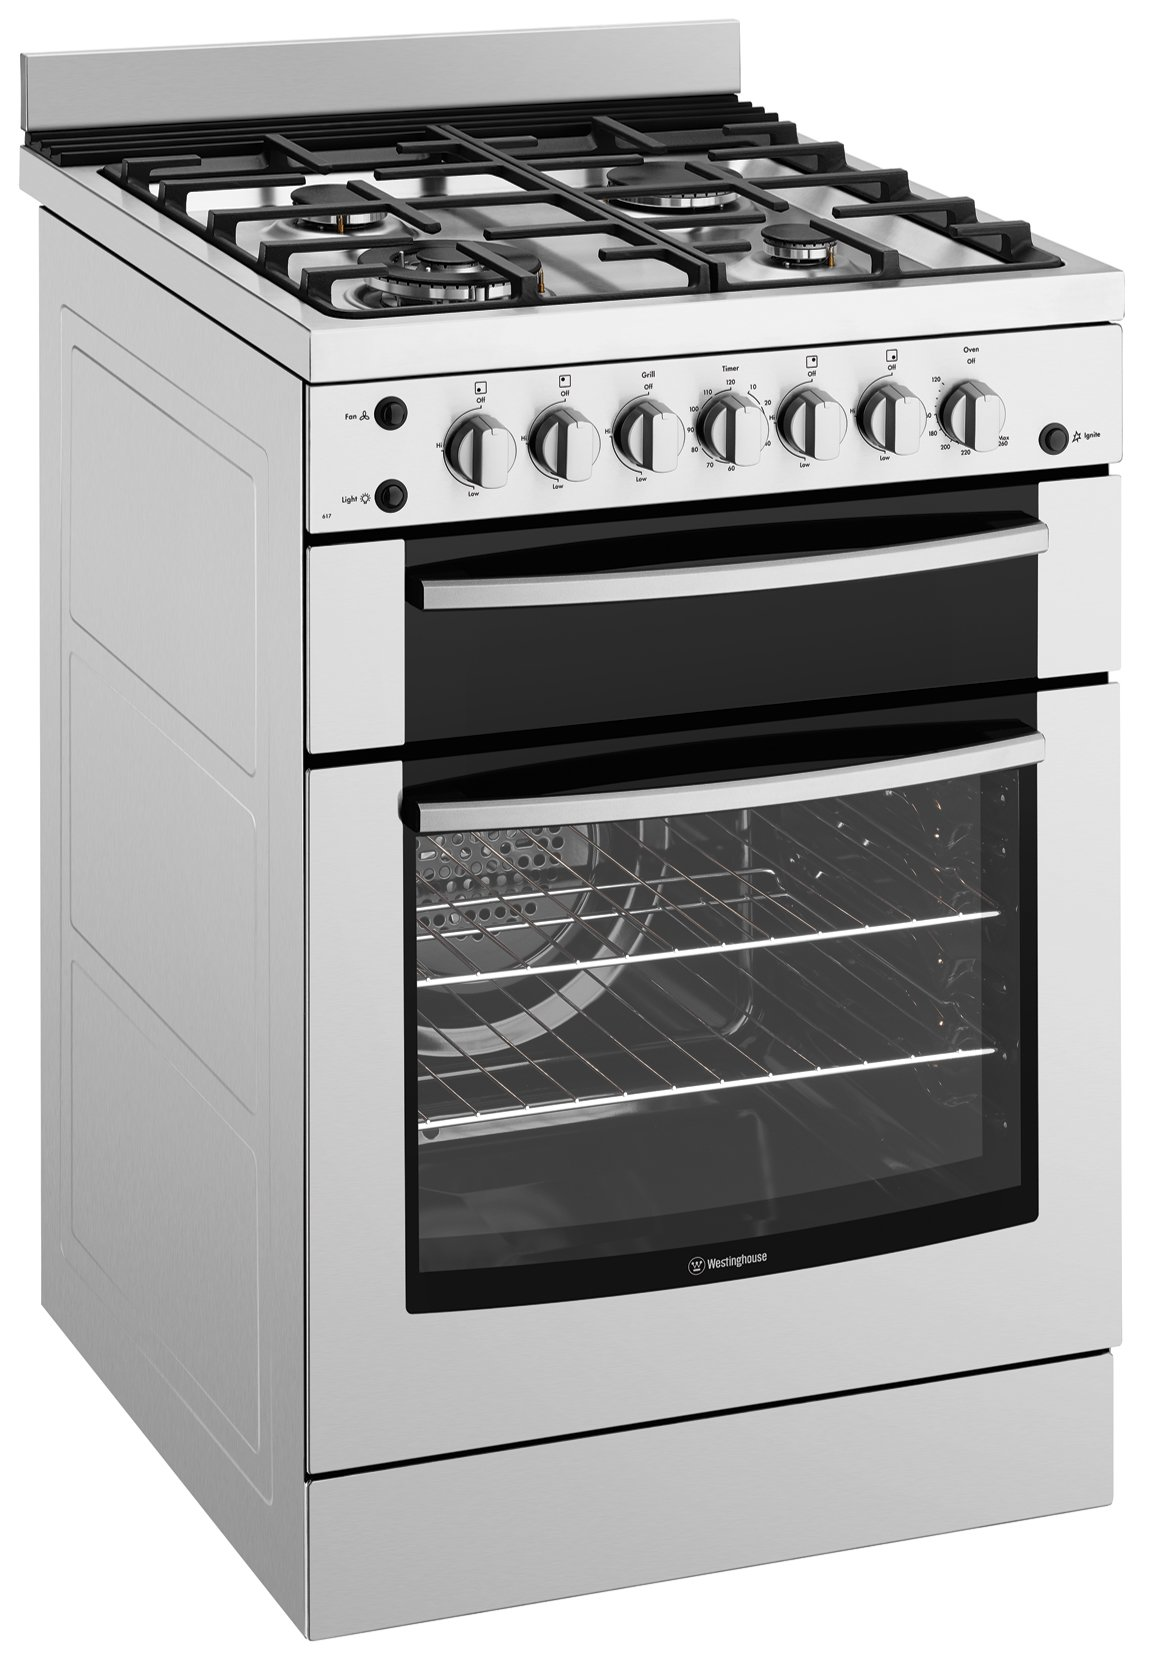 Herd Ofen Westinghouse Wfg617sa Freestanding Gas Oven Stove